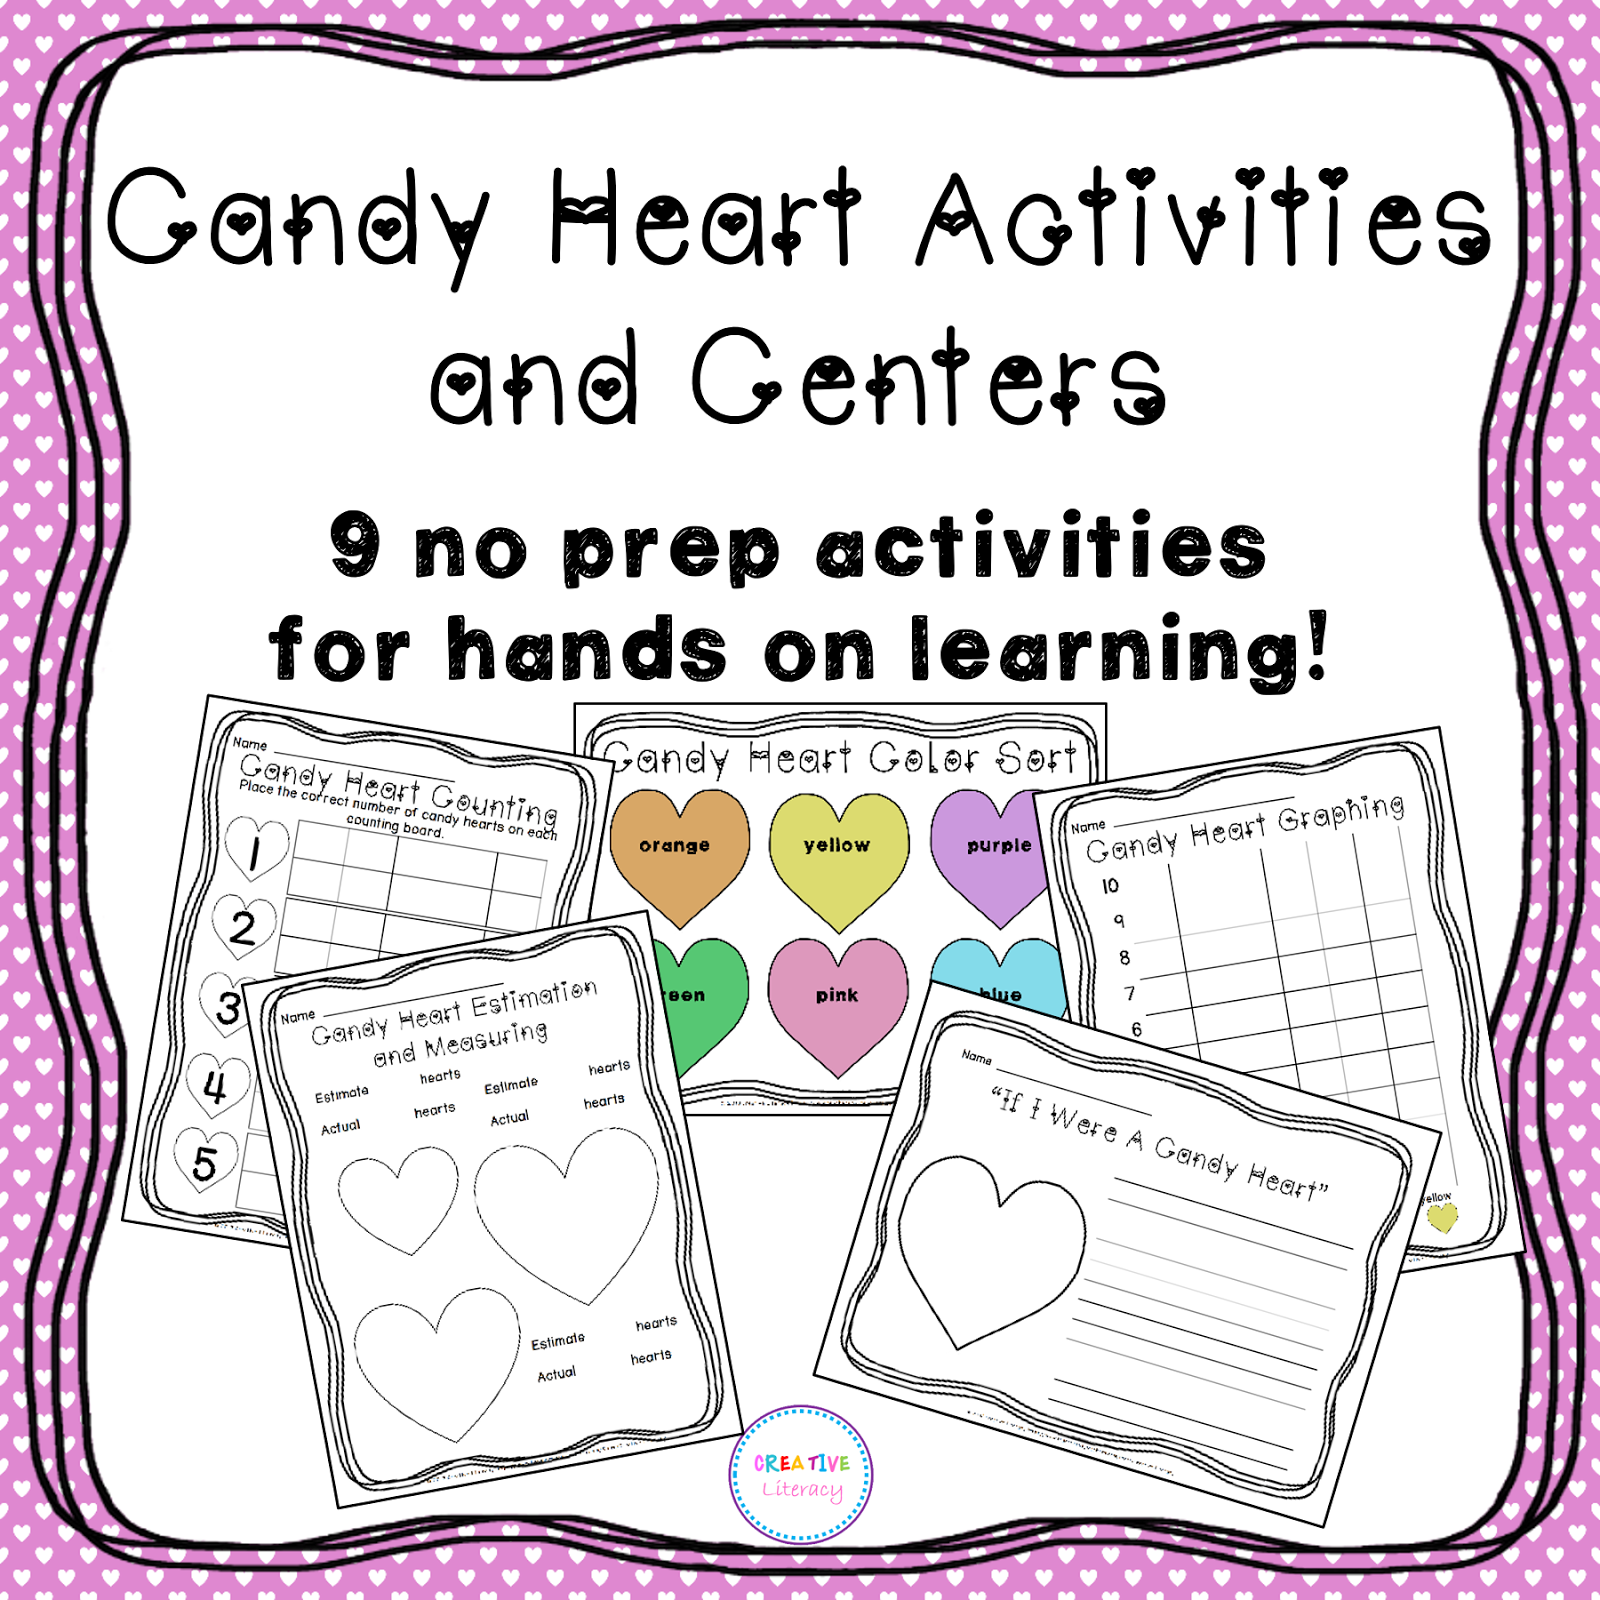 Creative Literacy Having Fun And Learning With Candy Hearts